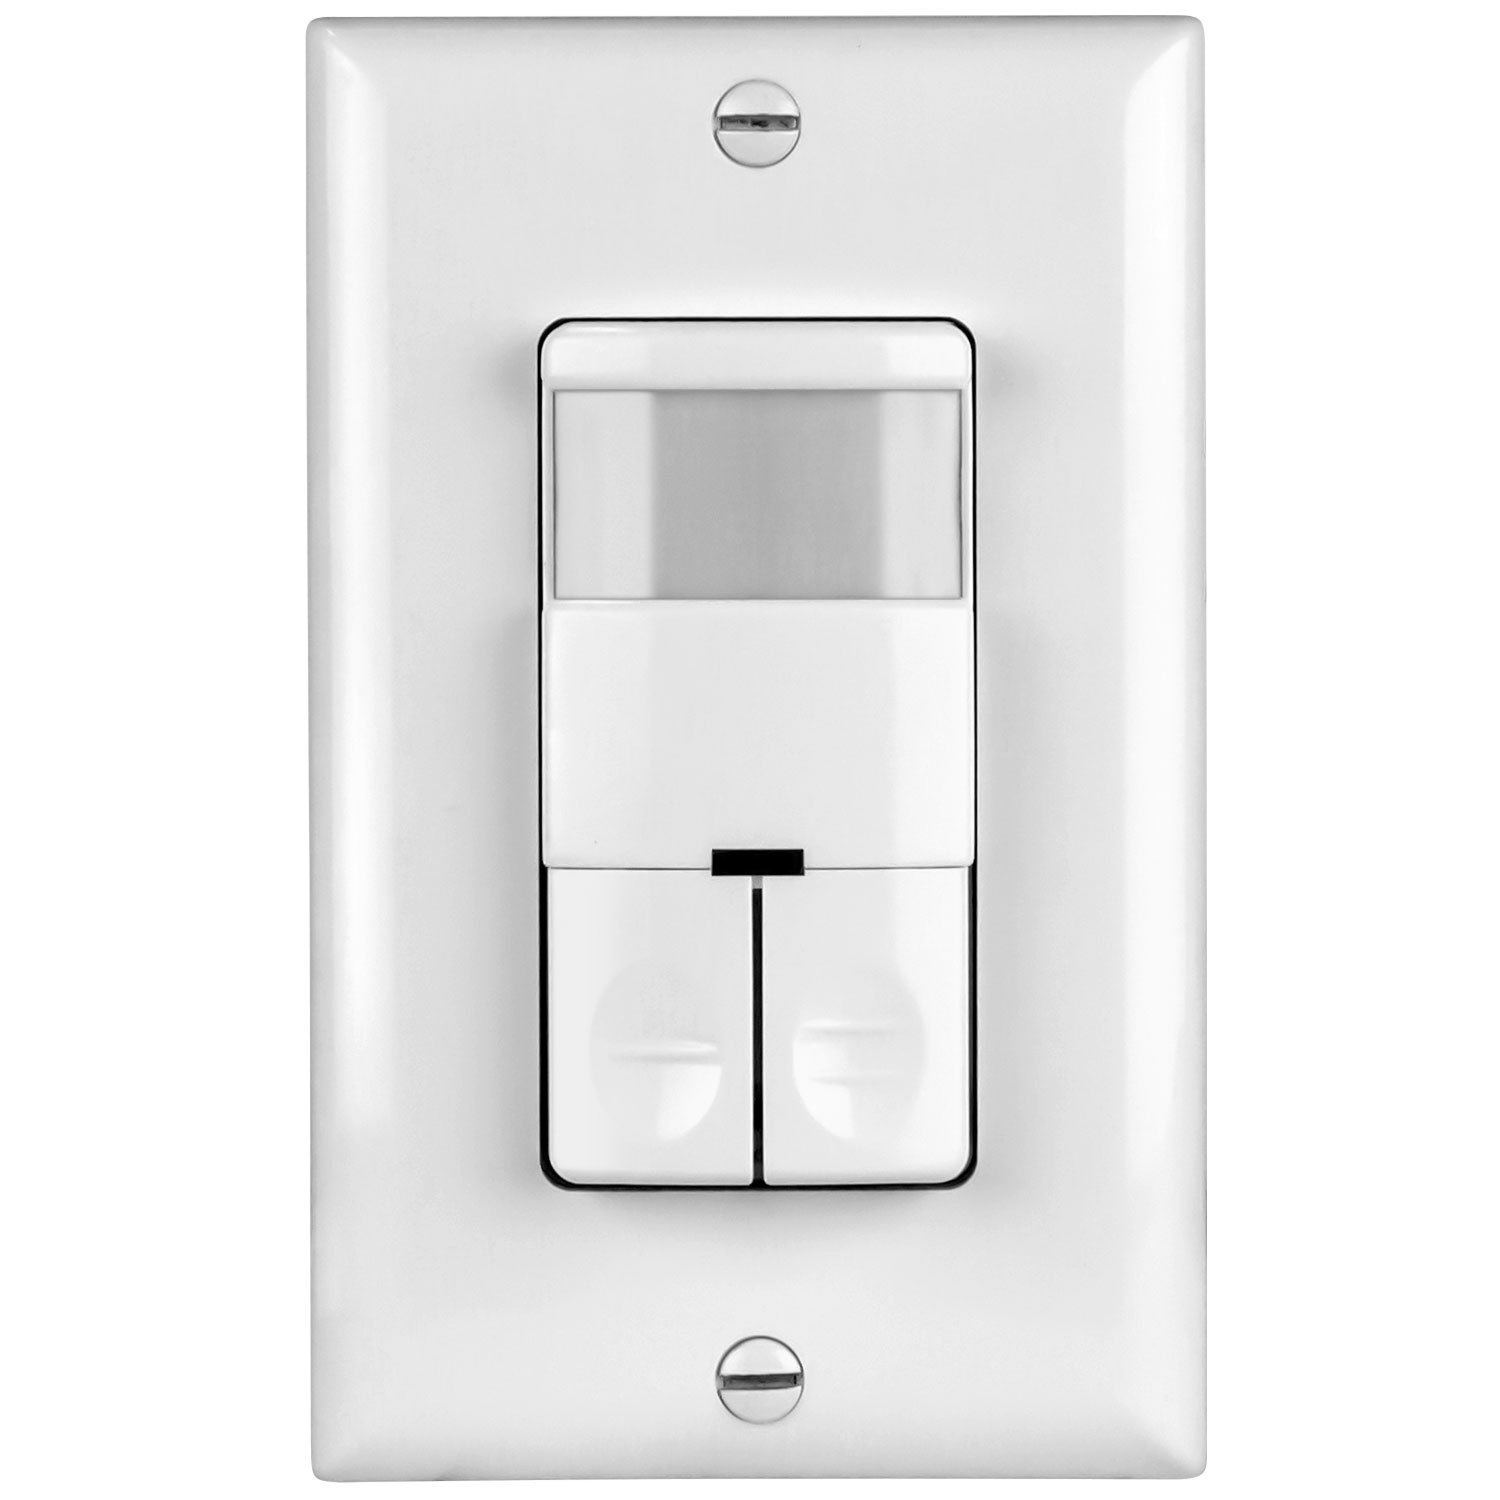 TOPGREENER TDOS5-JD Dual Load Occupancy/Vacancy Light Switch and Bathroom Fan PIR Motion Sensor, 800W, 1/4HP, 120/277VAC, Secured Ground Wire Required, Neutral Not Required, White